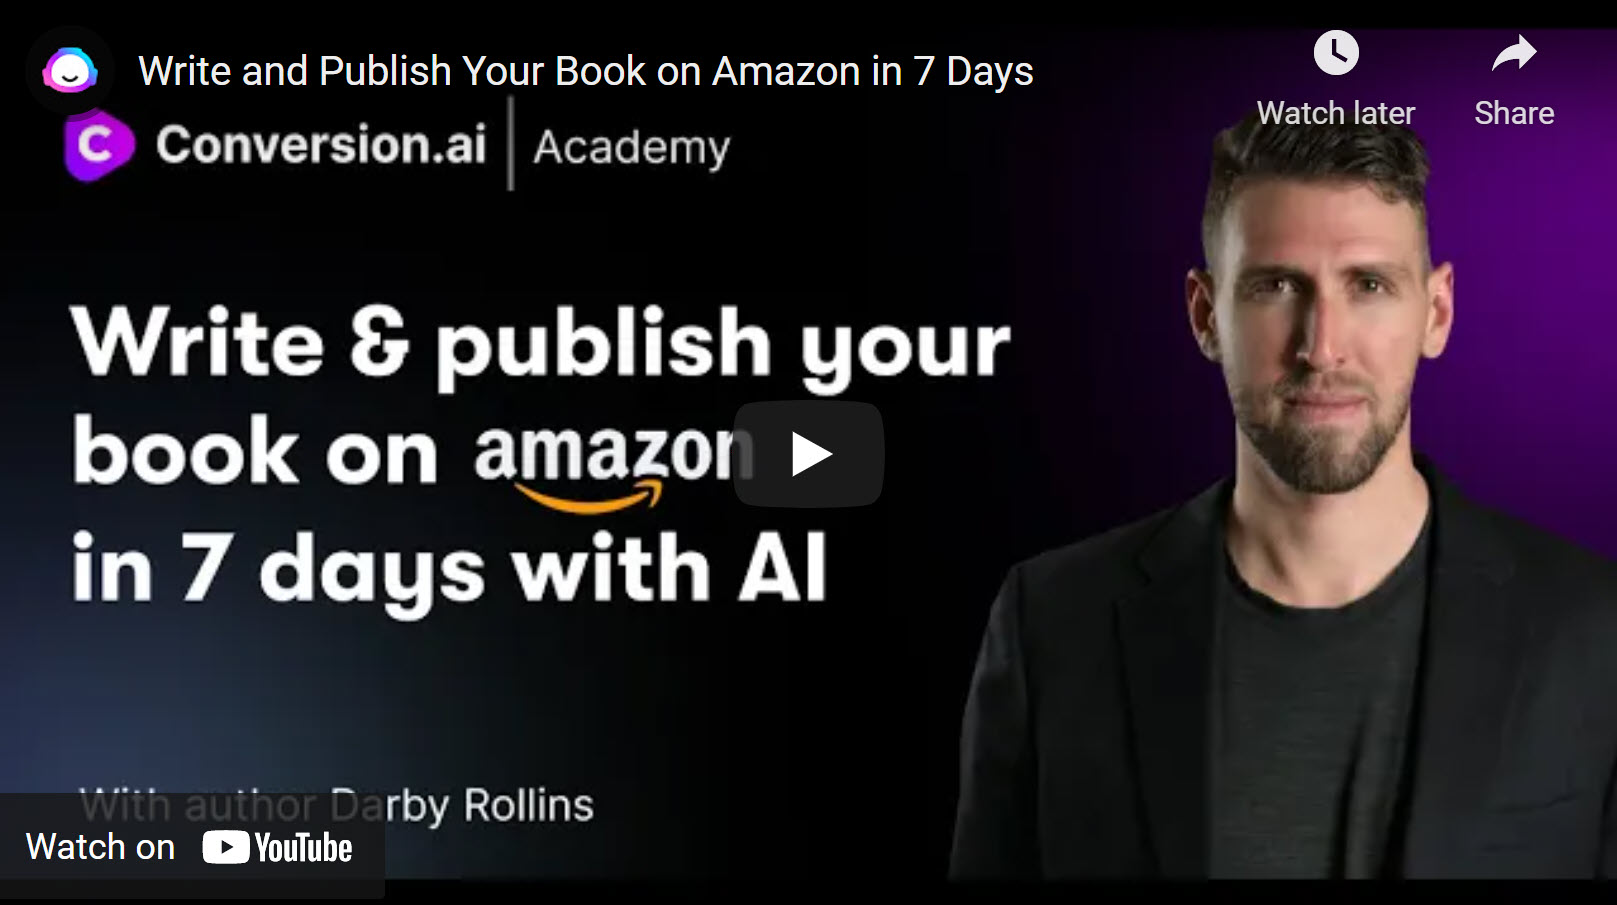 write and publish your book in 7 days with jarvis writing assistant